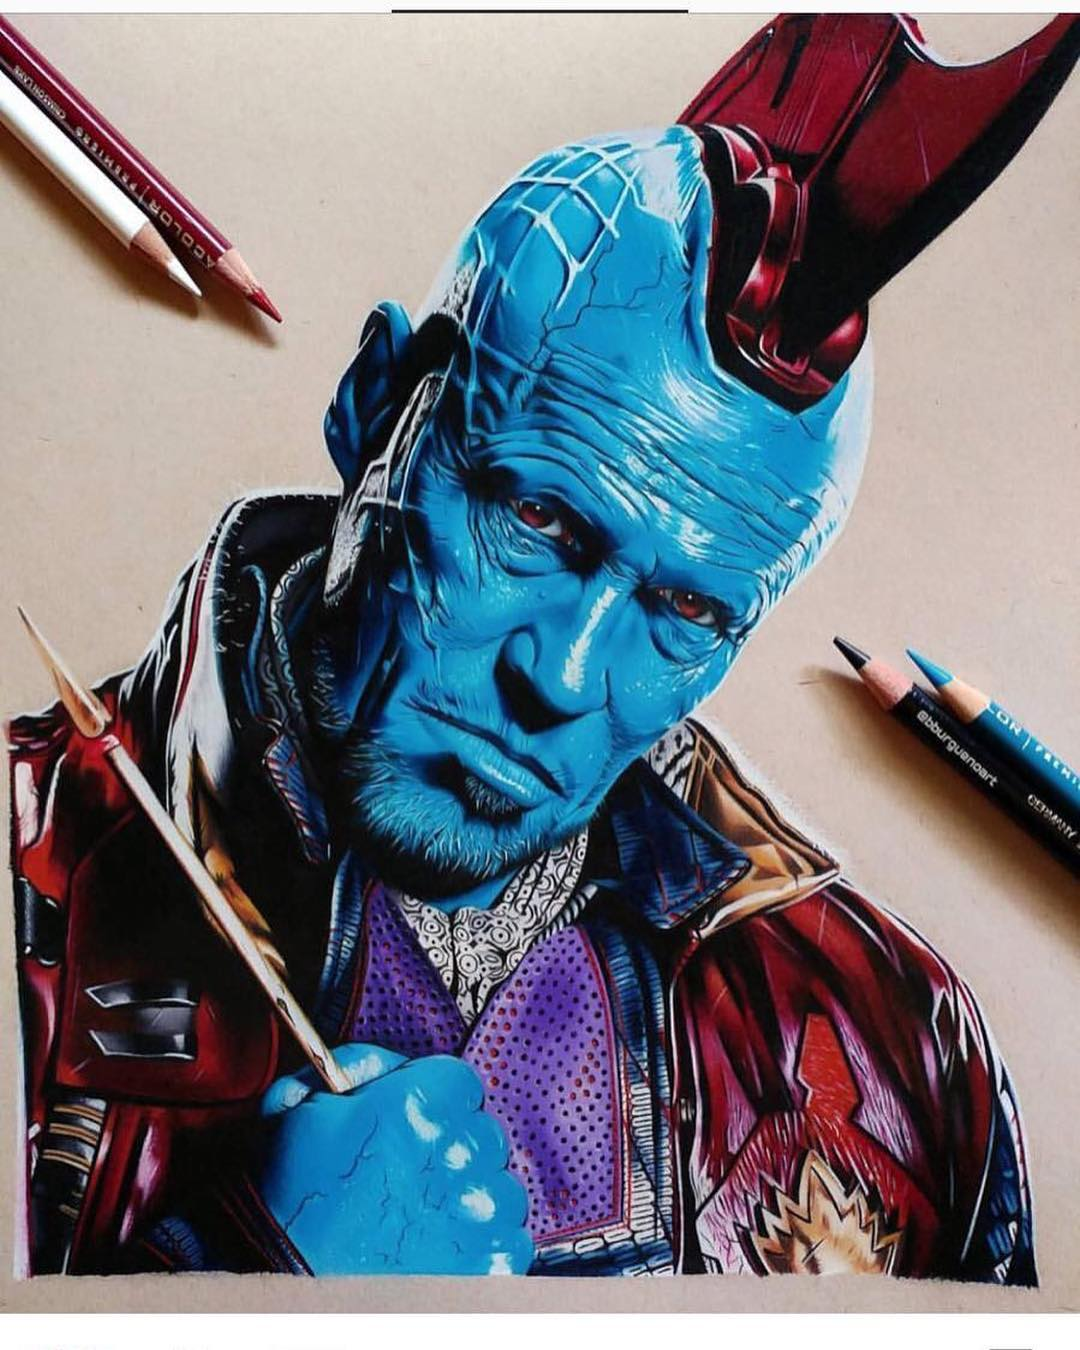 Michael Rooker Instagram username